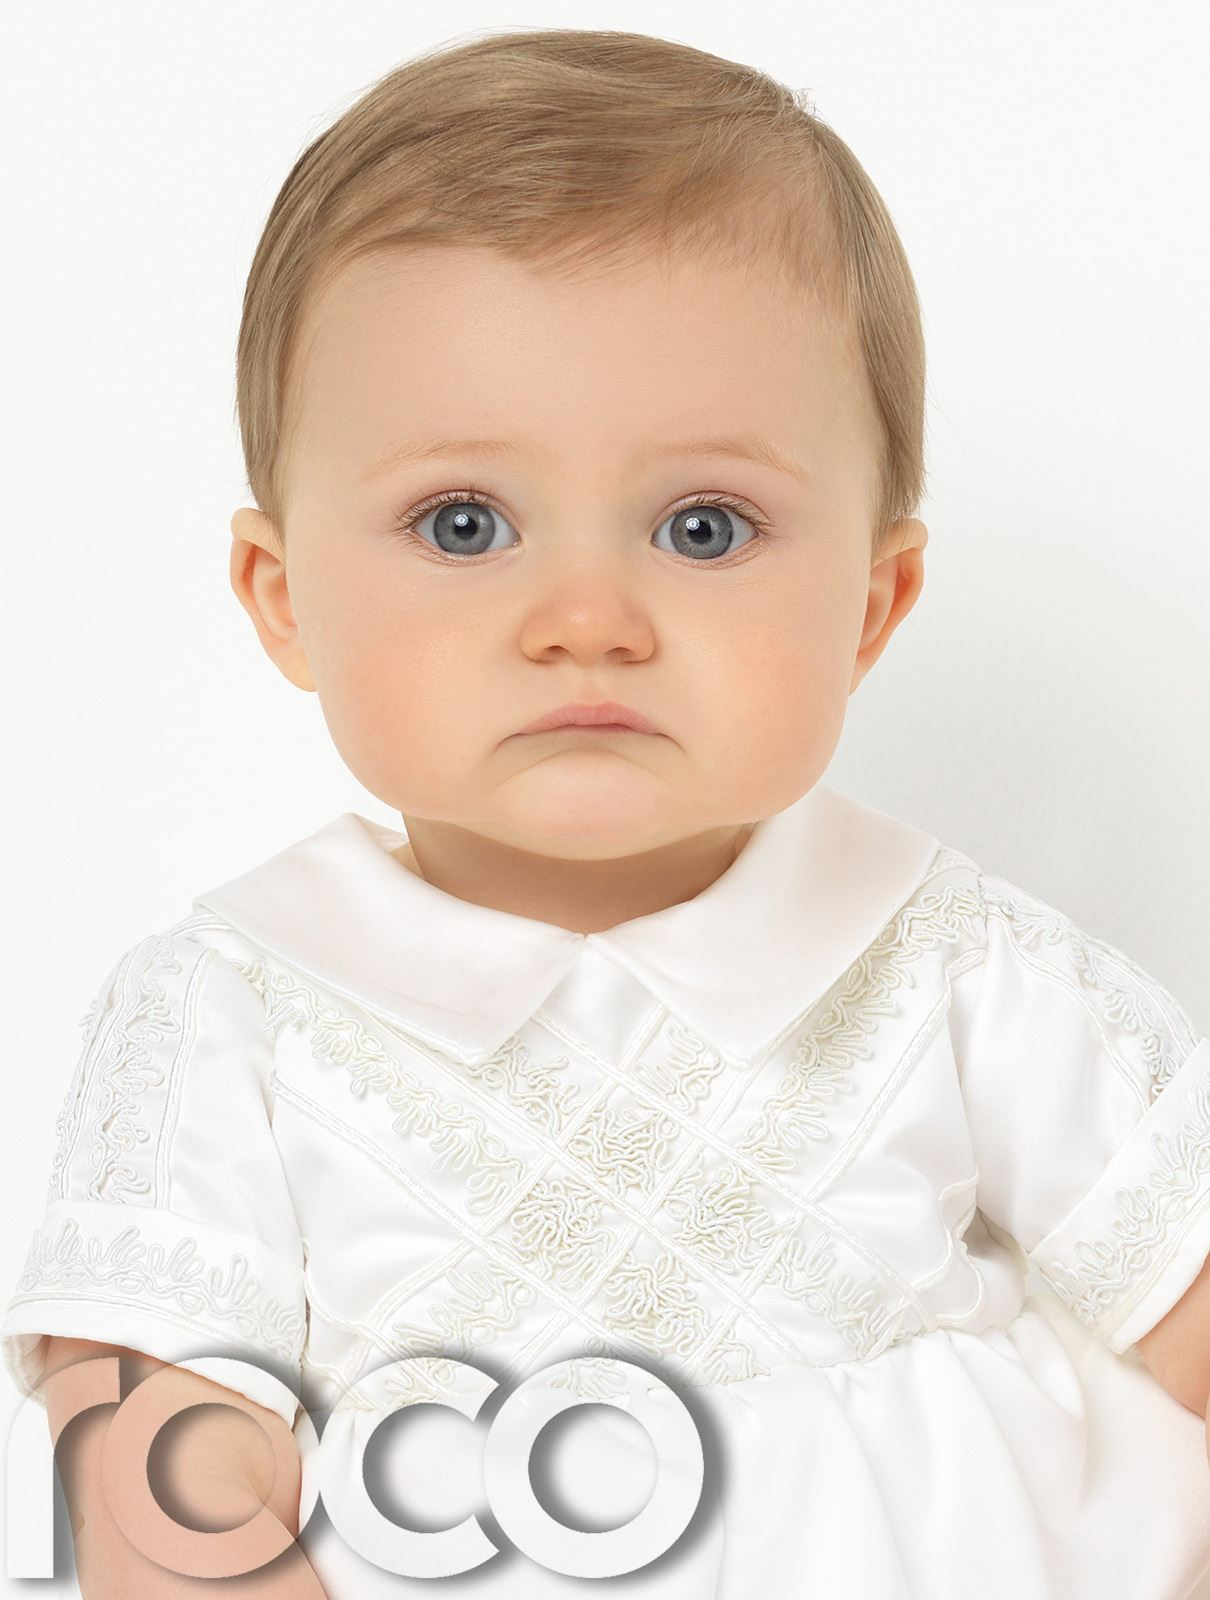 Baby-Boys-Romper-Suits-Boys-Christening-Outfits-Boys-Christening-Suits thumbnail 3